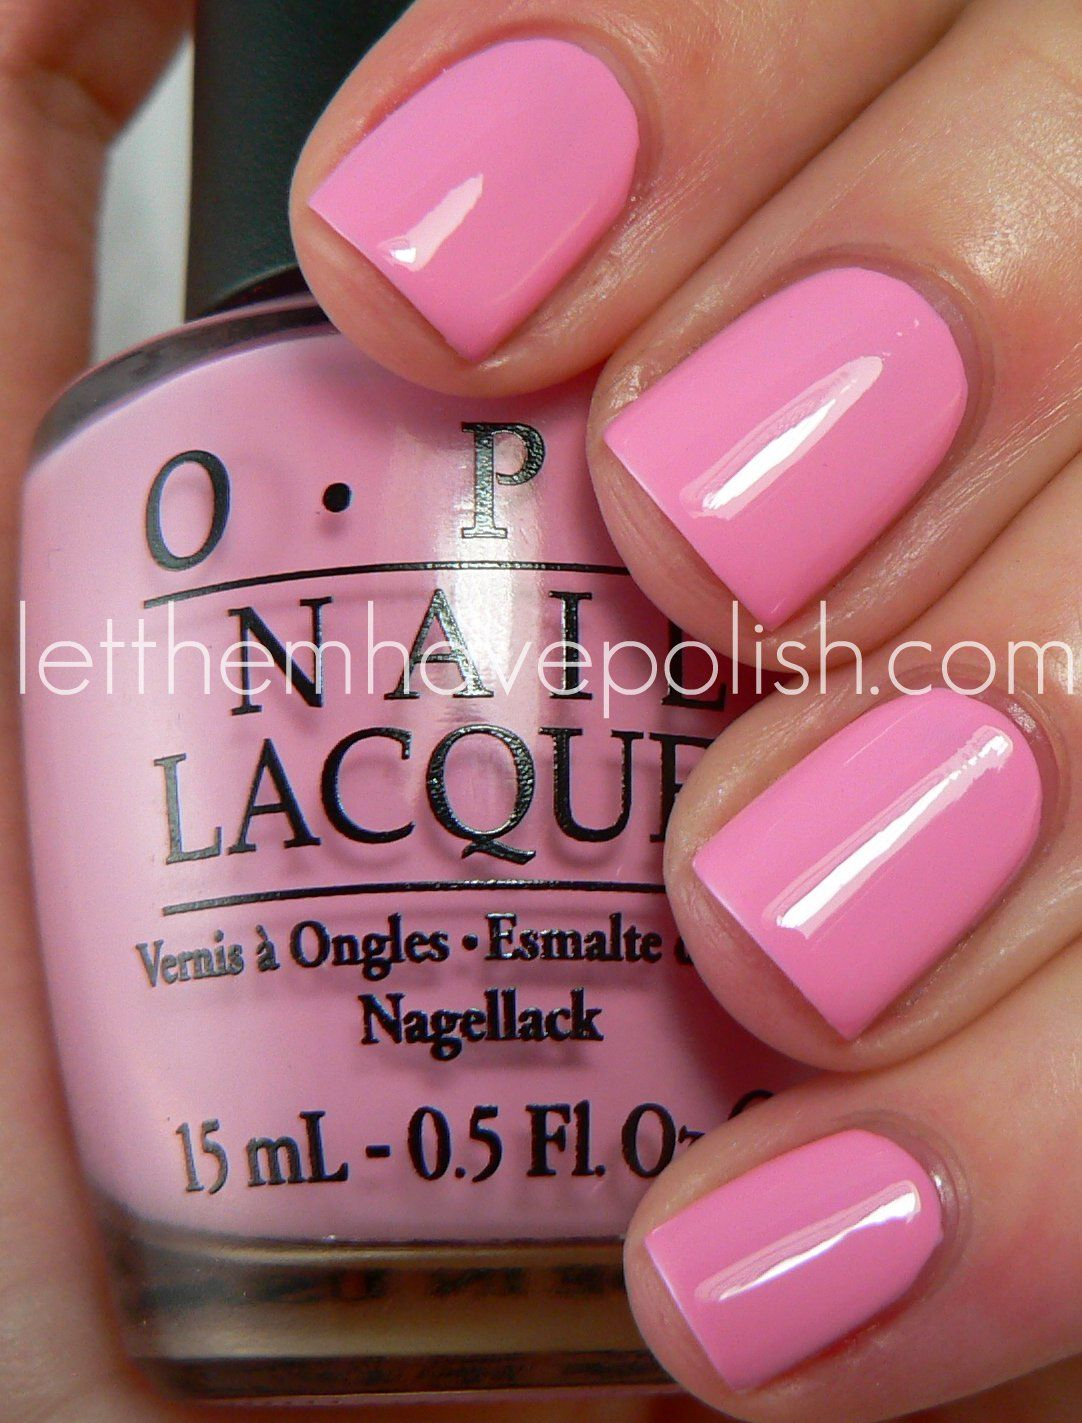 Let them have Polish!: O.P.I Nicki Minaj Collection Swatches | Nails ...